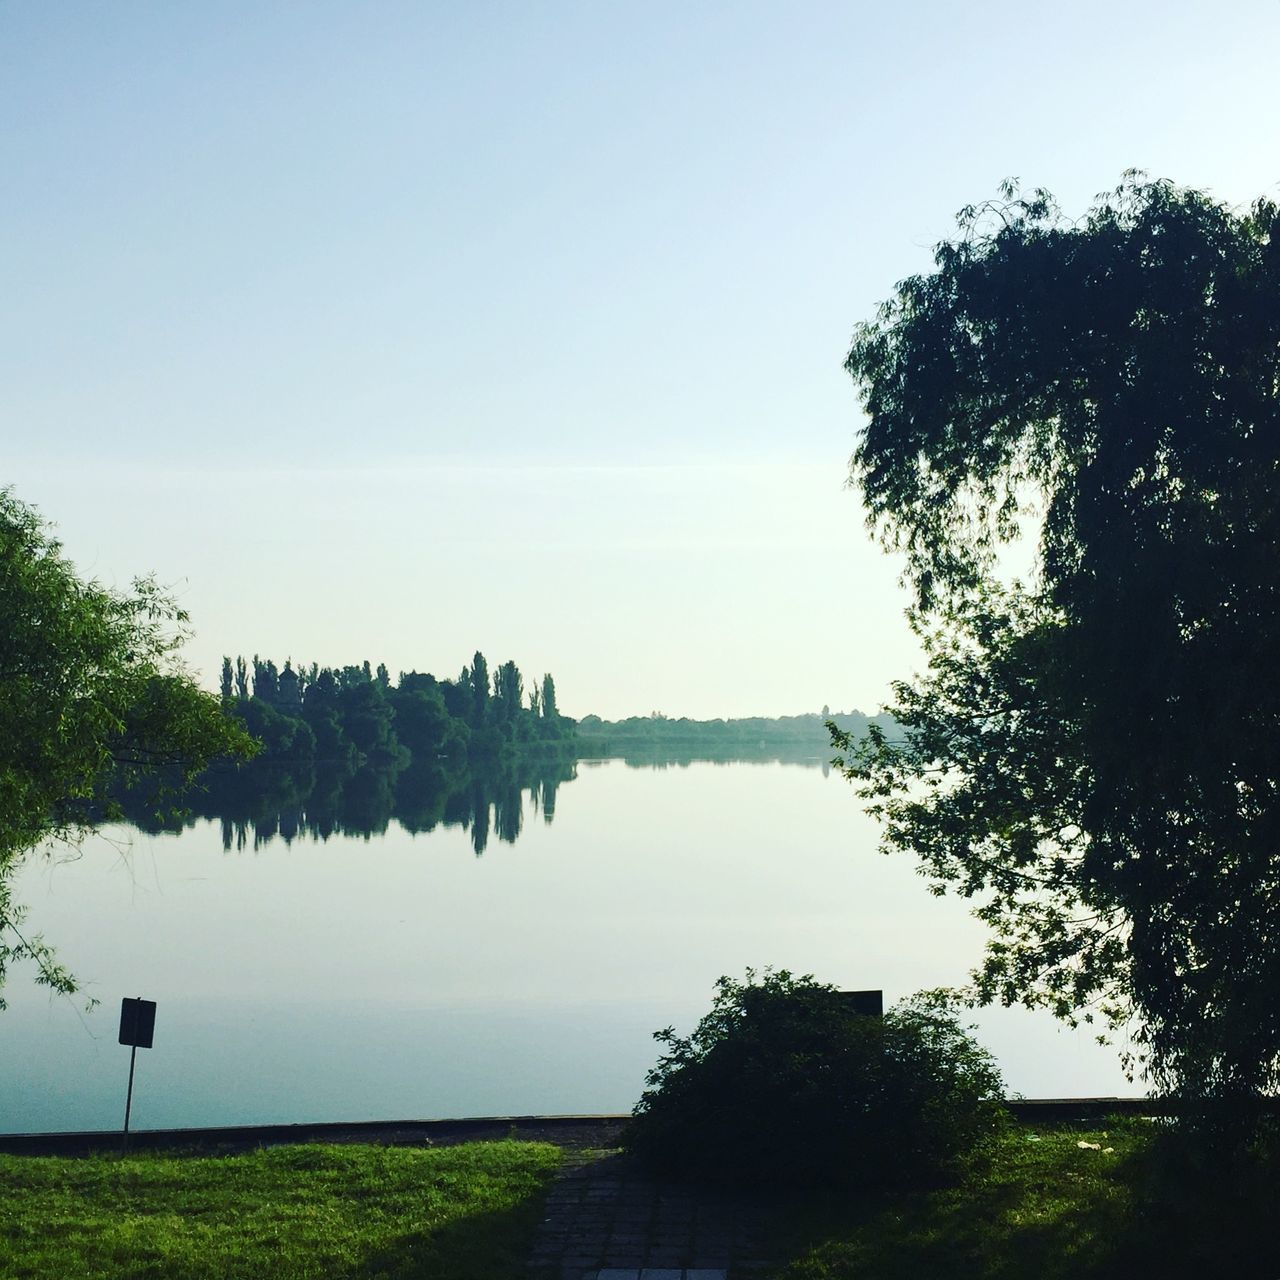 tree, nature, water, lake, beauty in nature, tranquil scene, growth, tranquility, clear sky, no people, outdoors, day, scenics, plant, sky, grass